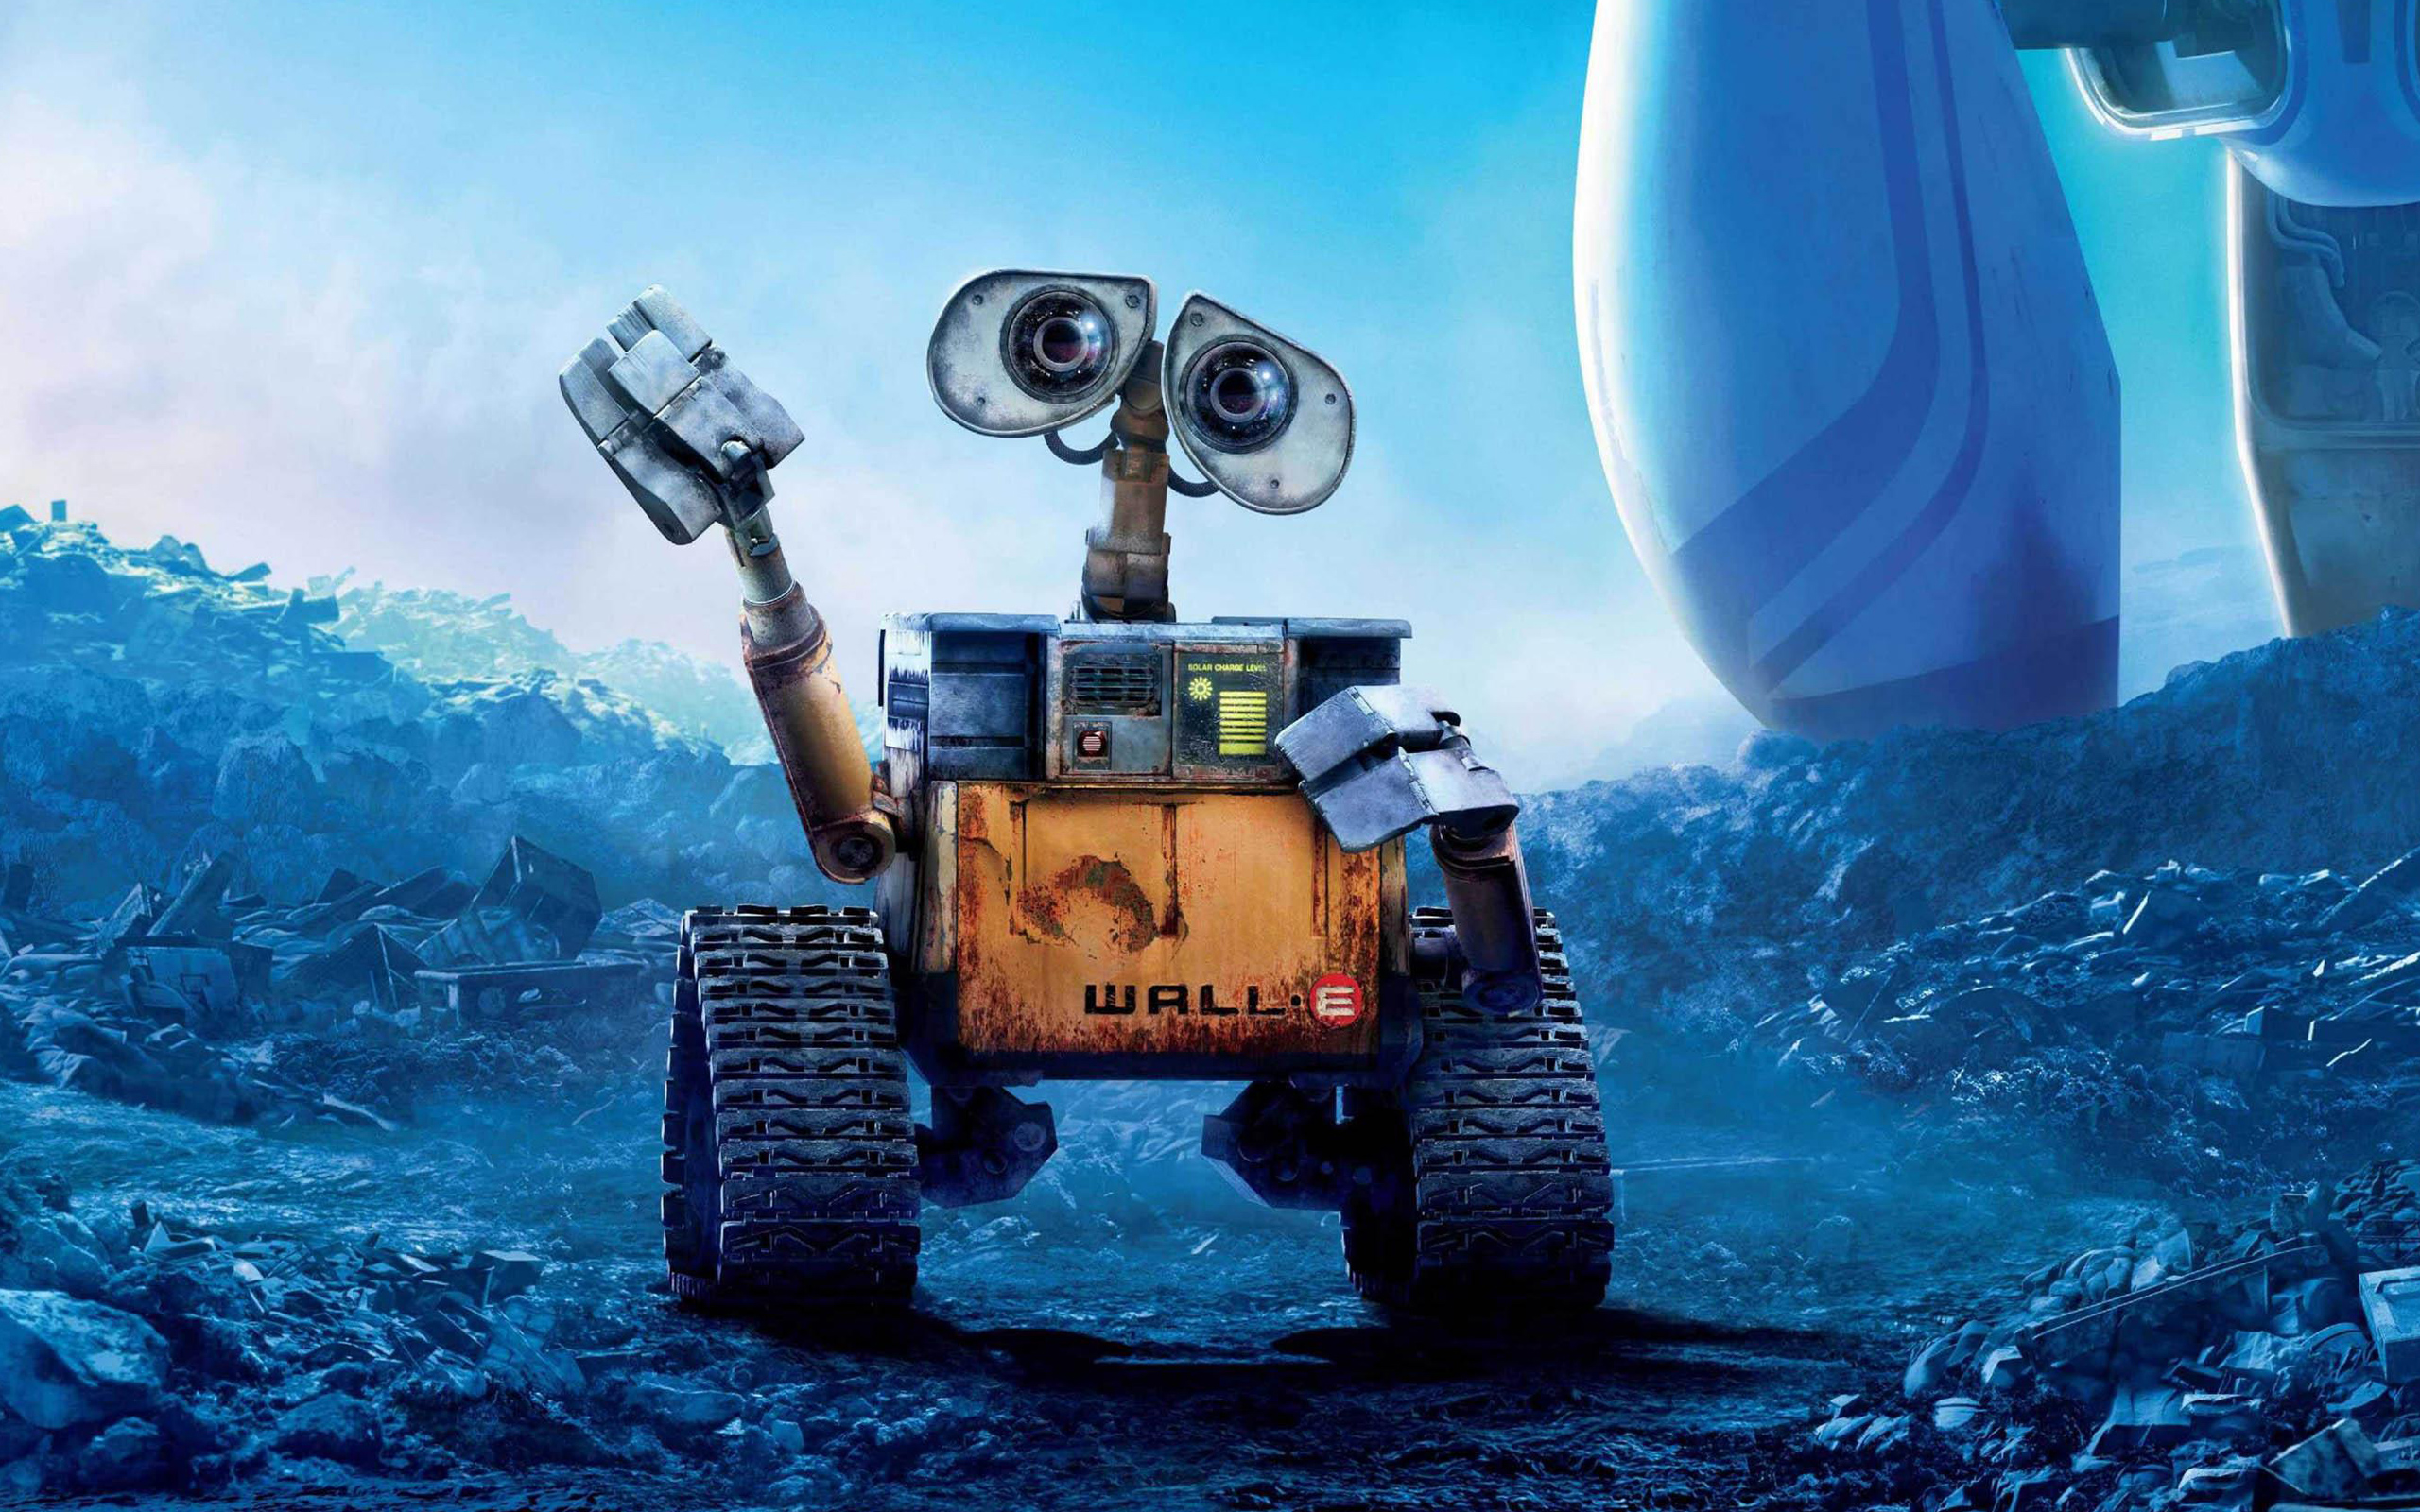 Free Wall E Wallpaper